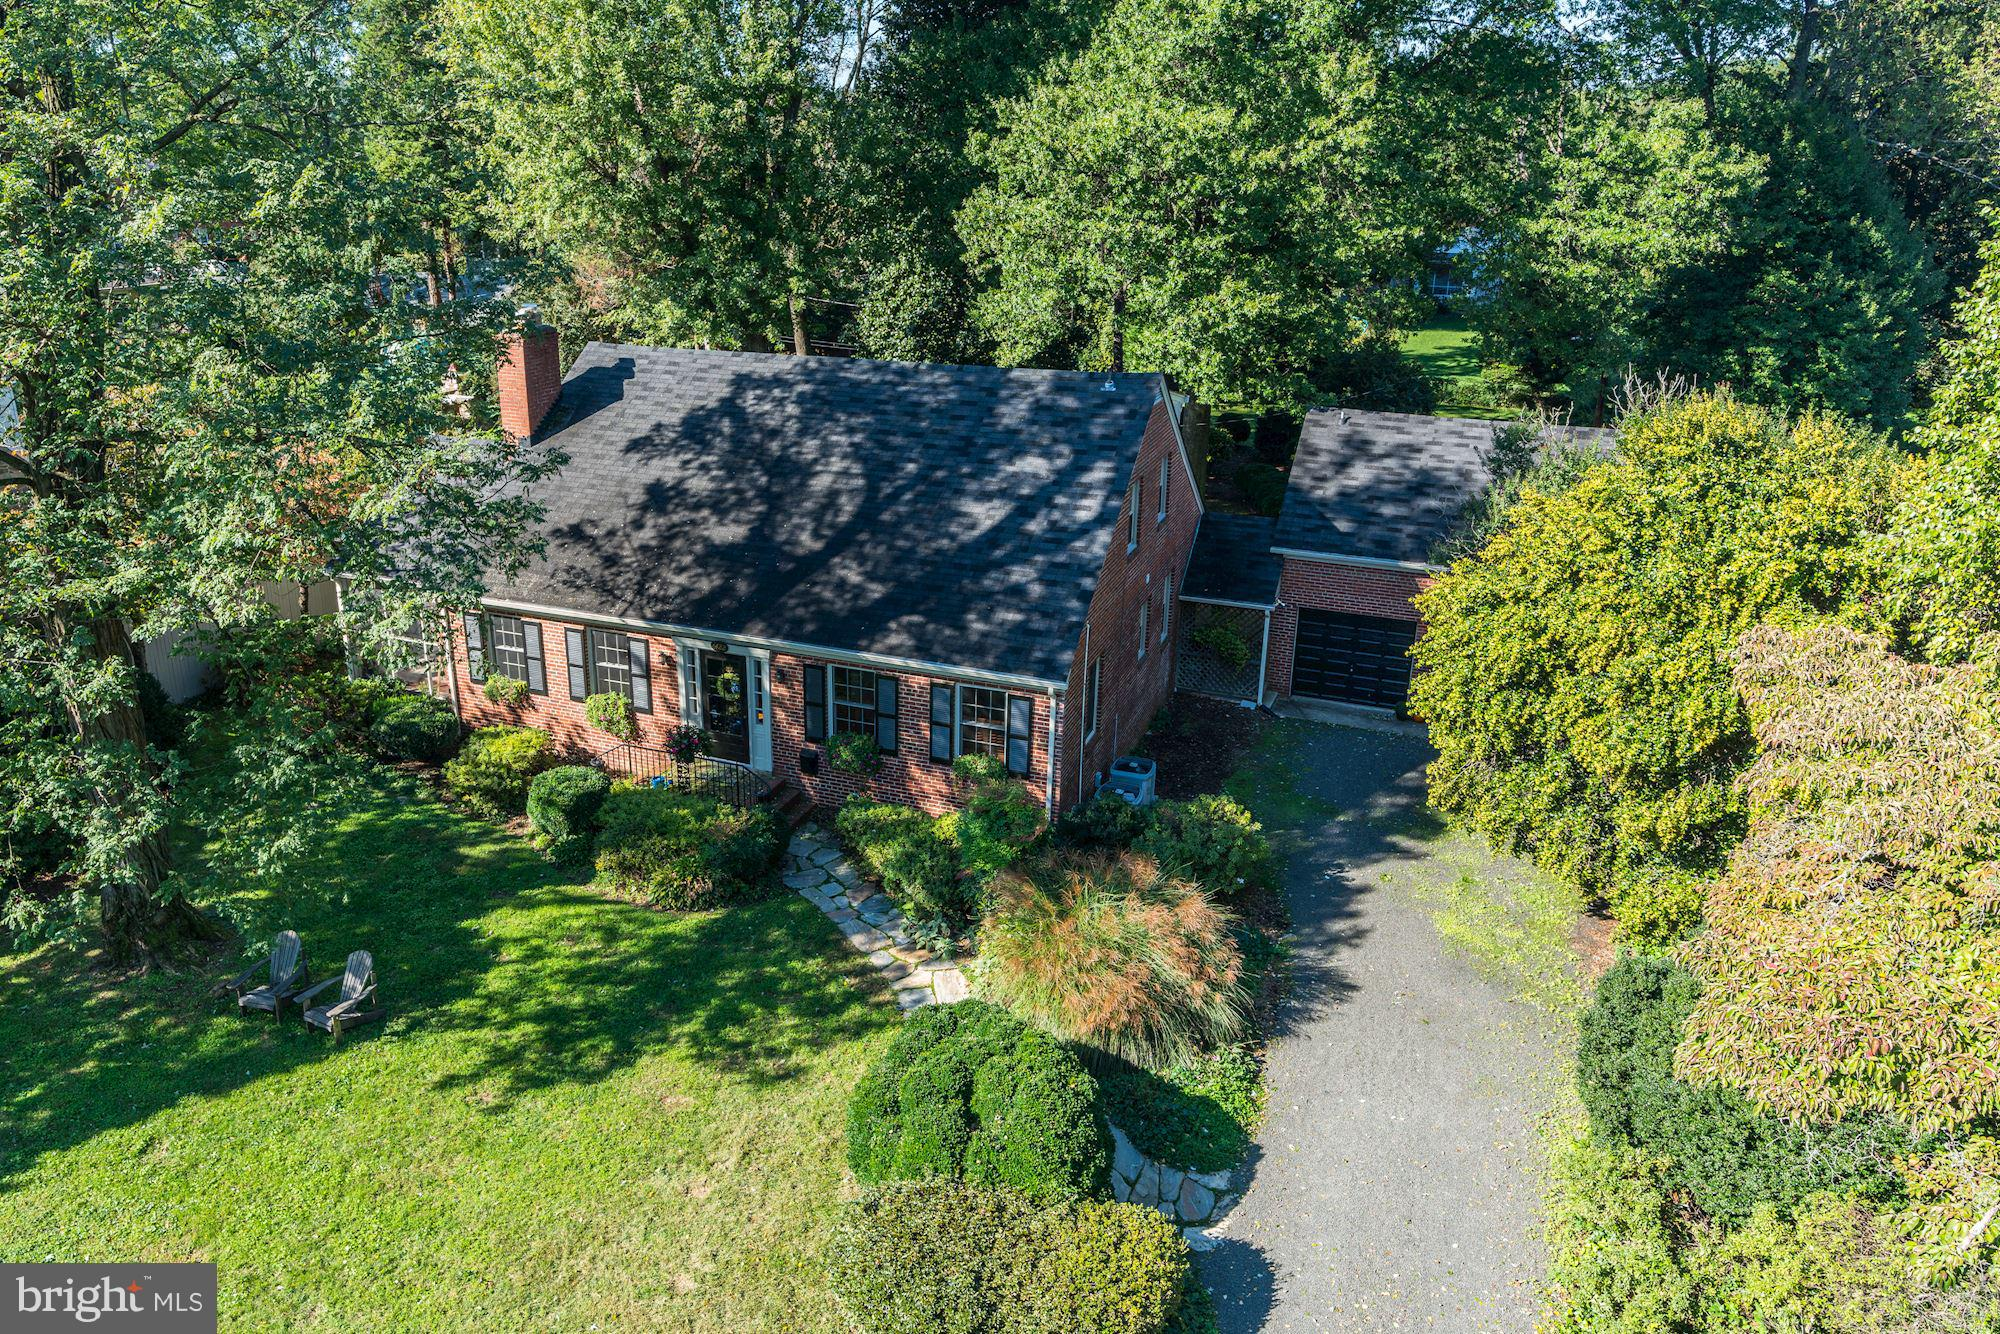 Open House Cancelled for 1/13/19.  Welcome to 6422 Boulevard View in beautiful New Alexandria!Gorgeous all brick Cape Cod inspired Colonial wows with truly stunning curb appeal.  This most inviting residence showcases an expansive; beautifully and thoughtfully landscaped yard perfectly sited on over ~ acre of level land.   Warmth and historic charm mingle with fine finishes and many handsome updates for an elegant and easy lifestyle.The main living level features a center hall, with a family room to the right and a formal yet cozy living room with custom built-ins to the left.  Gleaming, random-width hardwoods lead you to an exquisitely remodeled eat-in kitchen with custom cabinetry, a large island and high-end appliances.  This level boasts custom millwork, a main level master bedroom and an attractively updated full bath and access to the backyard and deck.  A lovely screened-in porch, a wood burning fireplace with custom mantle accent the perfect flow and the open floor plan make this home an entertainer~s paradise.The bedroom level boasts hardwoods, three huge bedrooms and a large sparkling white hall bath.  Recent renovations on this level include a custom walk-in master bedroom closet and fresh designer paint.Above the two-car, all brick, detached garage there are recently updated guest quarters with a full bath and a kitchen, perfect for a home office, overnight guests, au pair suite or in-law suite.This close-in location is literally steps from the George Washington Parkway Bike Path, Dyke~s Marsh and Belle Haven Marina, the 11Y commuter bus to Old Town and DC and the Belle View Shopping Center.  Walk to restaurants, stores and enjoy a short bike ride or walk to Old Town Alexandria.  Easy access to the Beltway, Pentagon, Fort Belvoir and all commuting routes.  Simply perfect!  Welcome home!